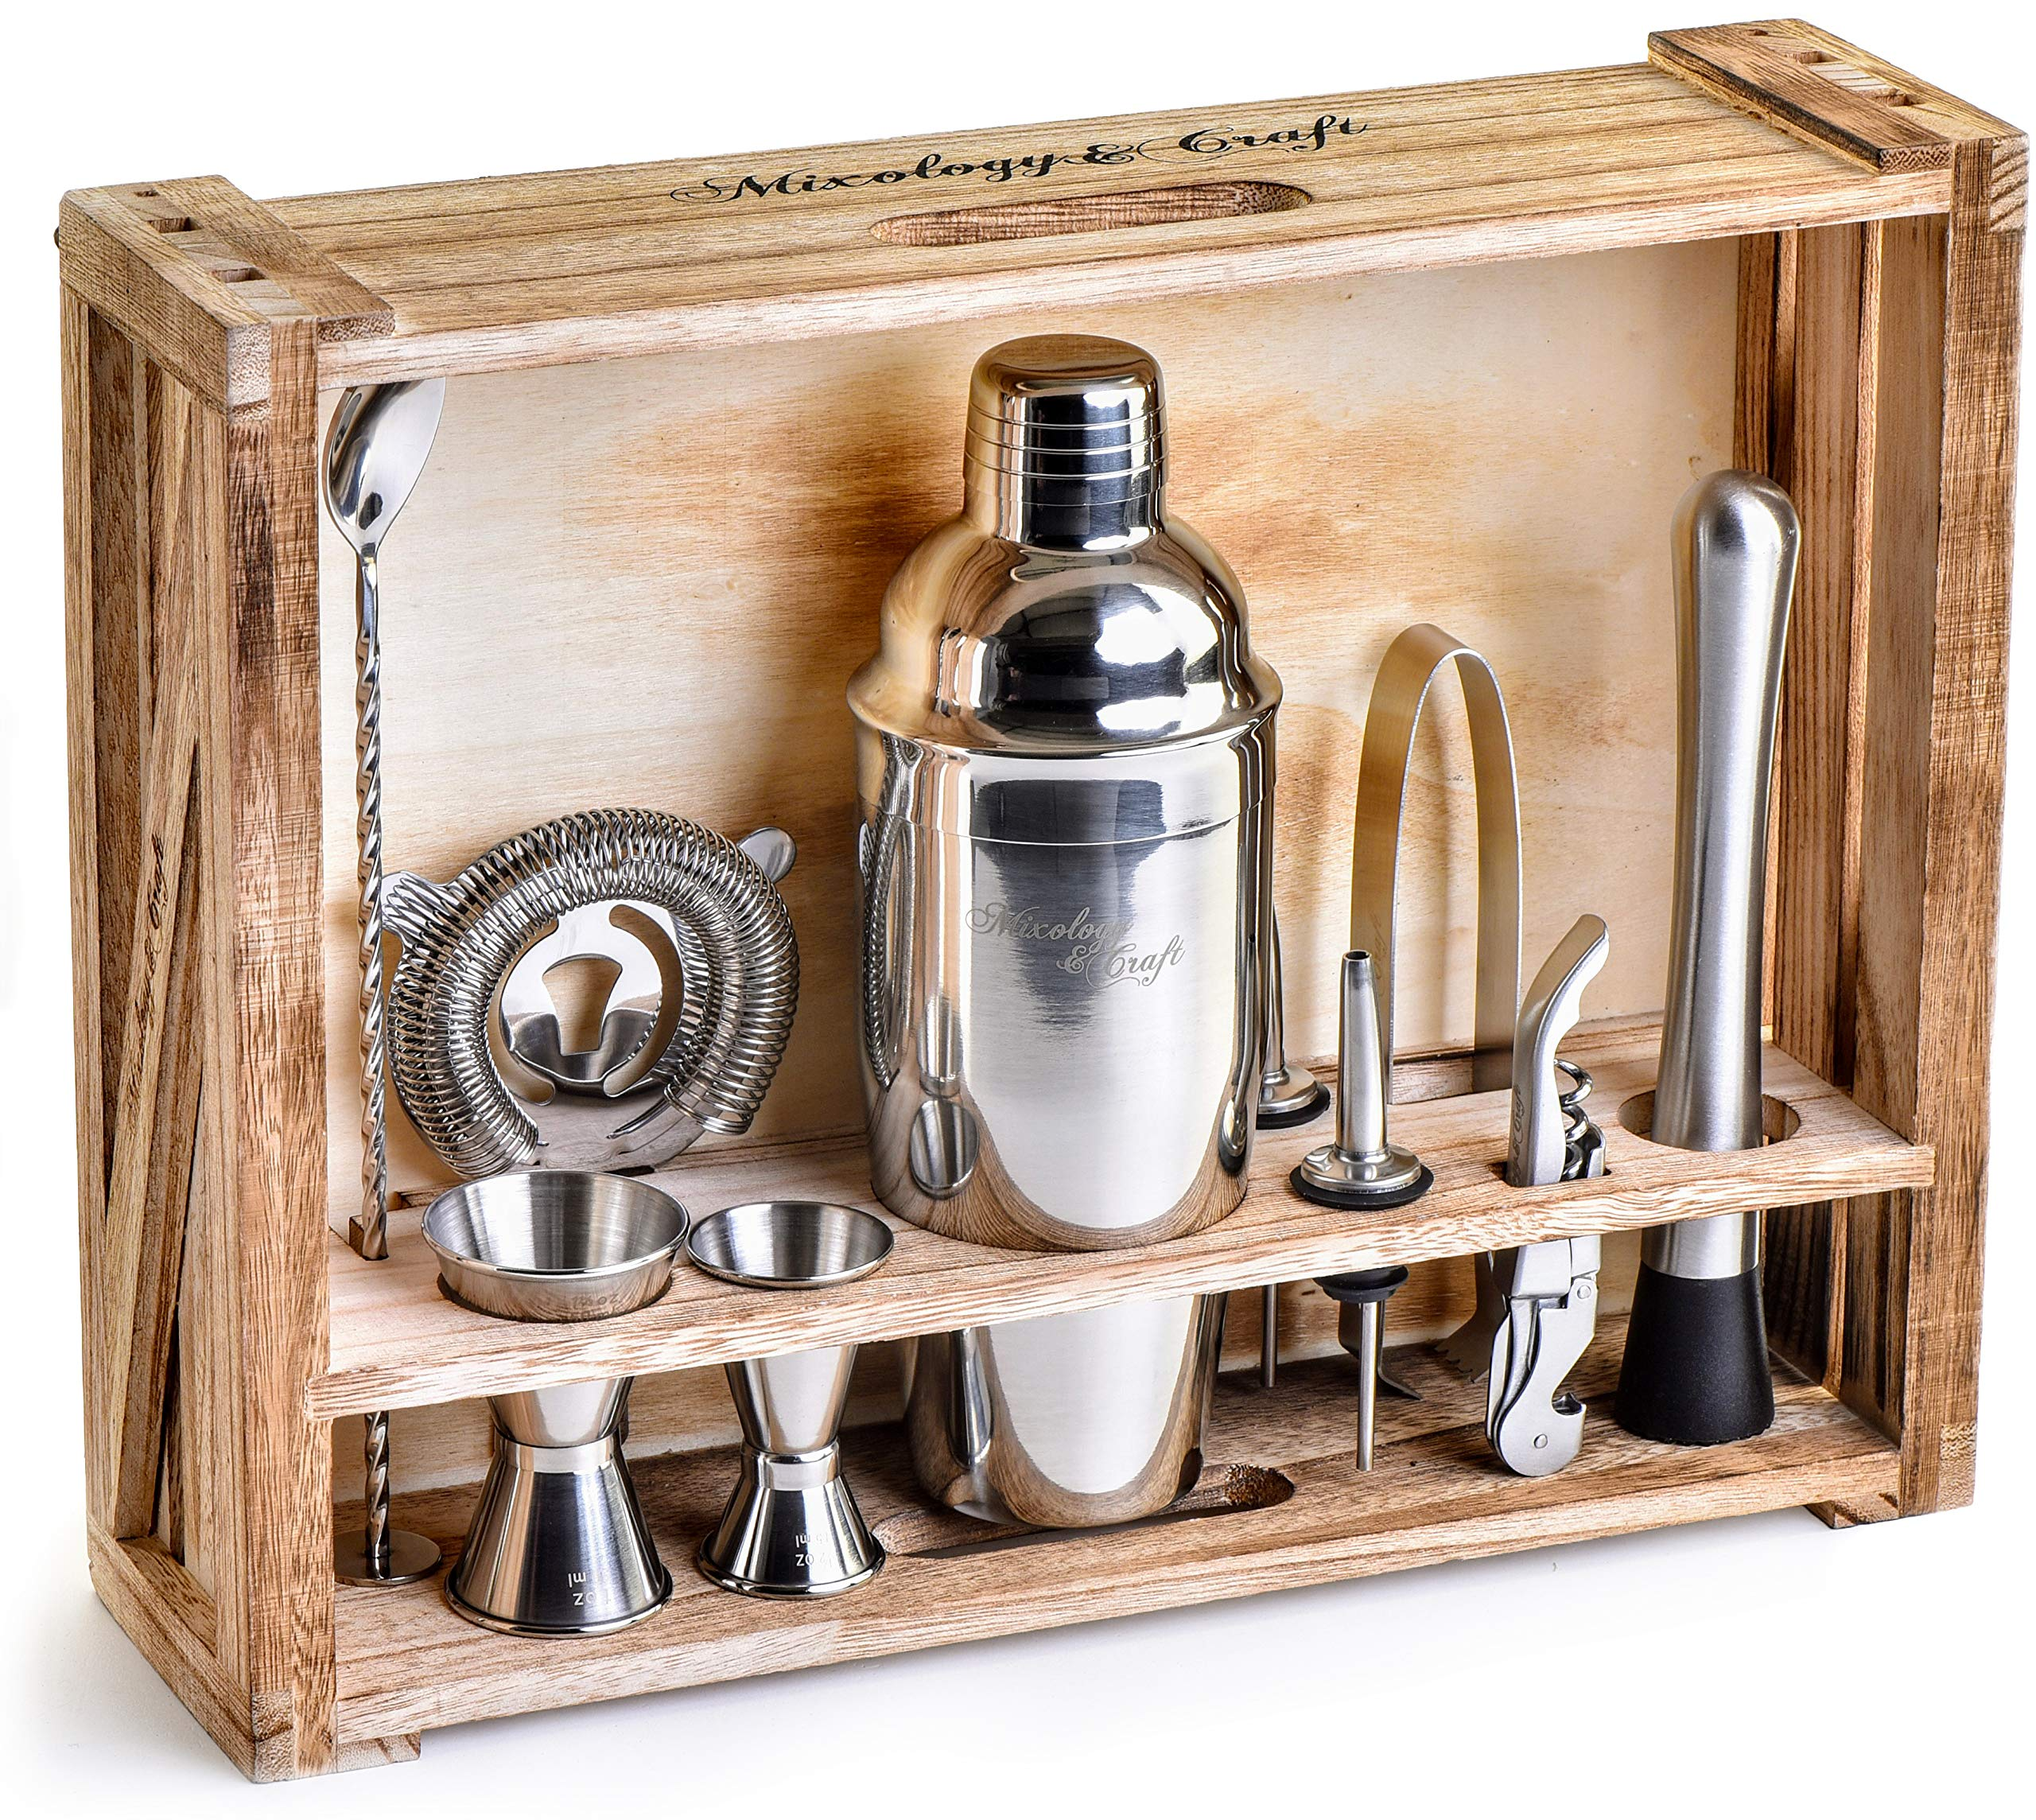 Mixology Bartender Kit: 11-Piece Bar Tool Set with Rustic Wood Stand - Perfect Home Bartending Kit and Cocktail Shaker Set For an Awesome Drink Mixing Experience - Exclusive Cocktail Recipes Bonus by Mixology & Craft